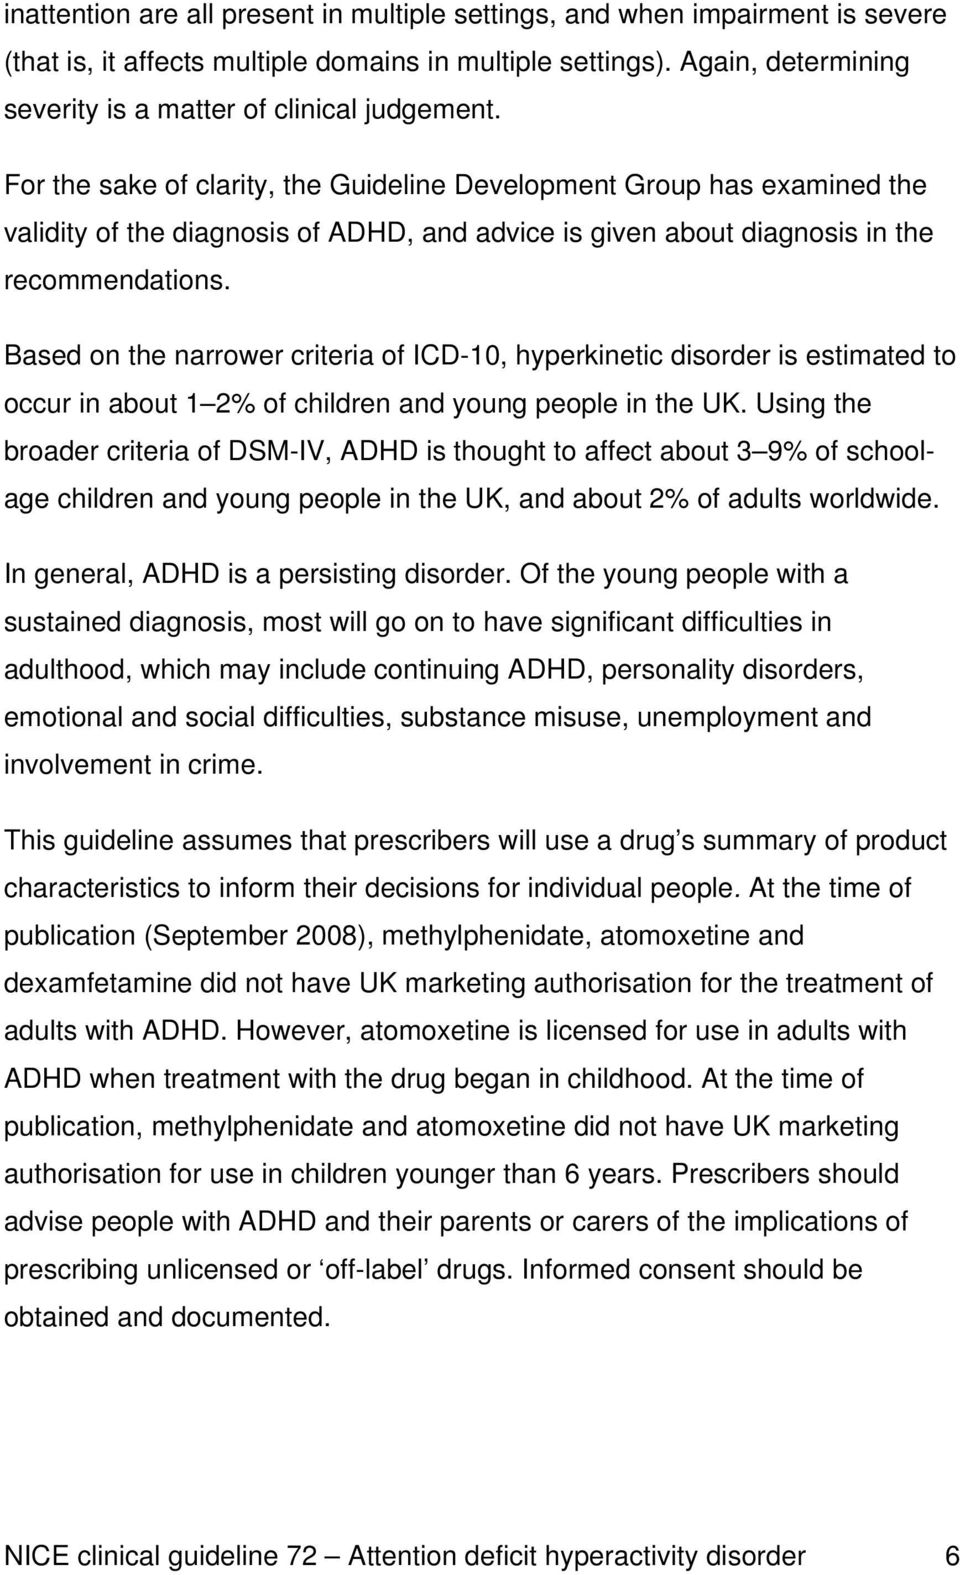 For the sake of clarity, the Guideline Development Group has examined the validity of the diagnosis of ADHD, and advice is given about diagnosis in the recommendations.